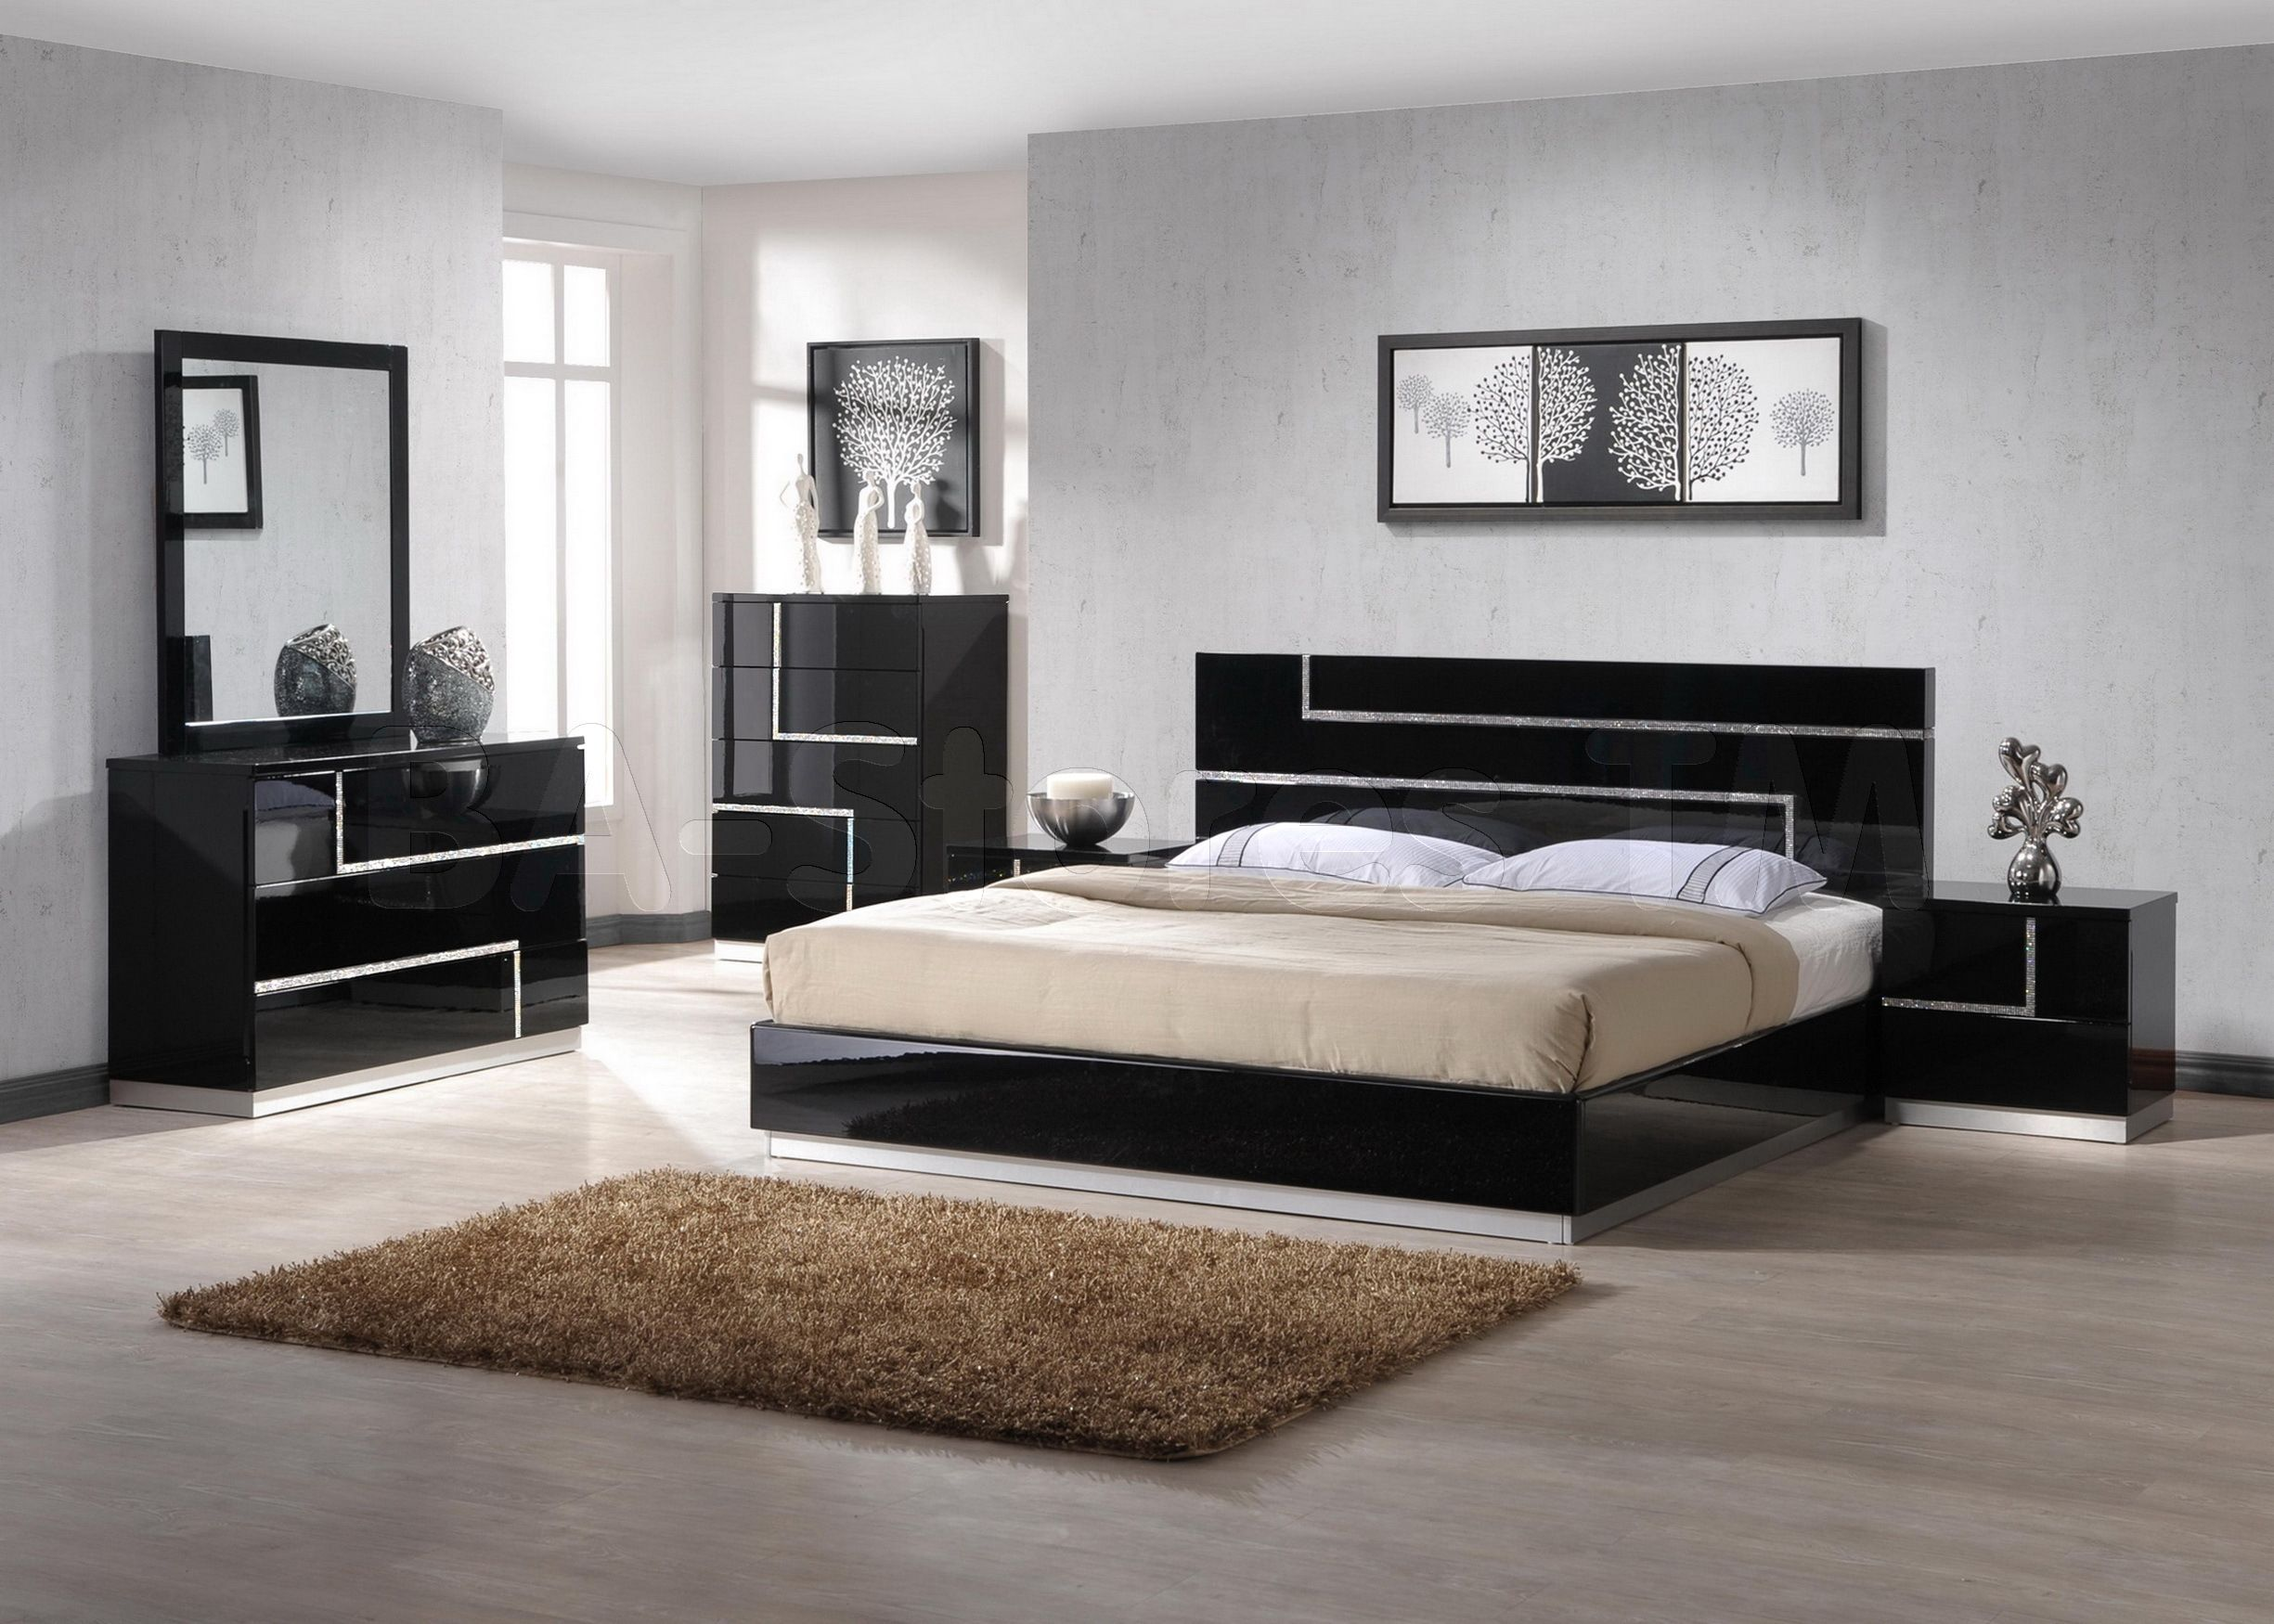 Contemporary Headboard Ideas for your Modern Bedroom | Modern Space ...